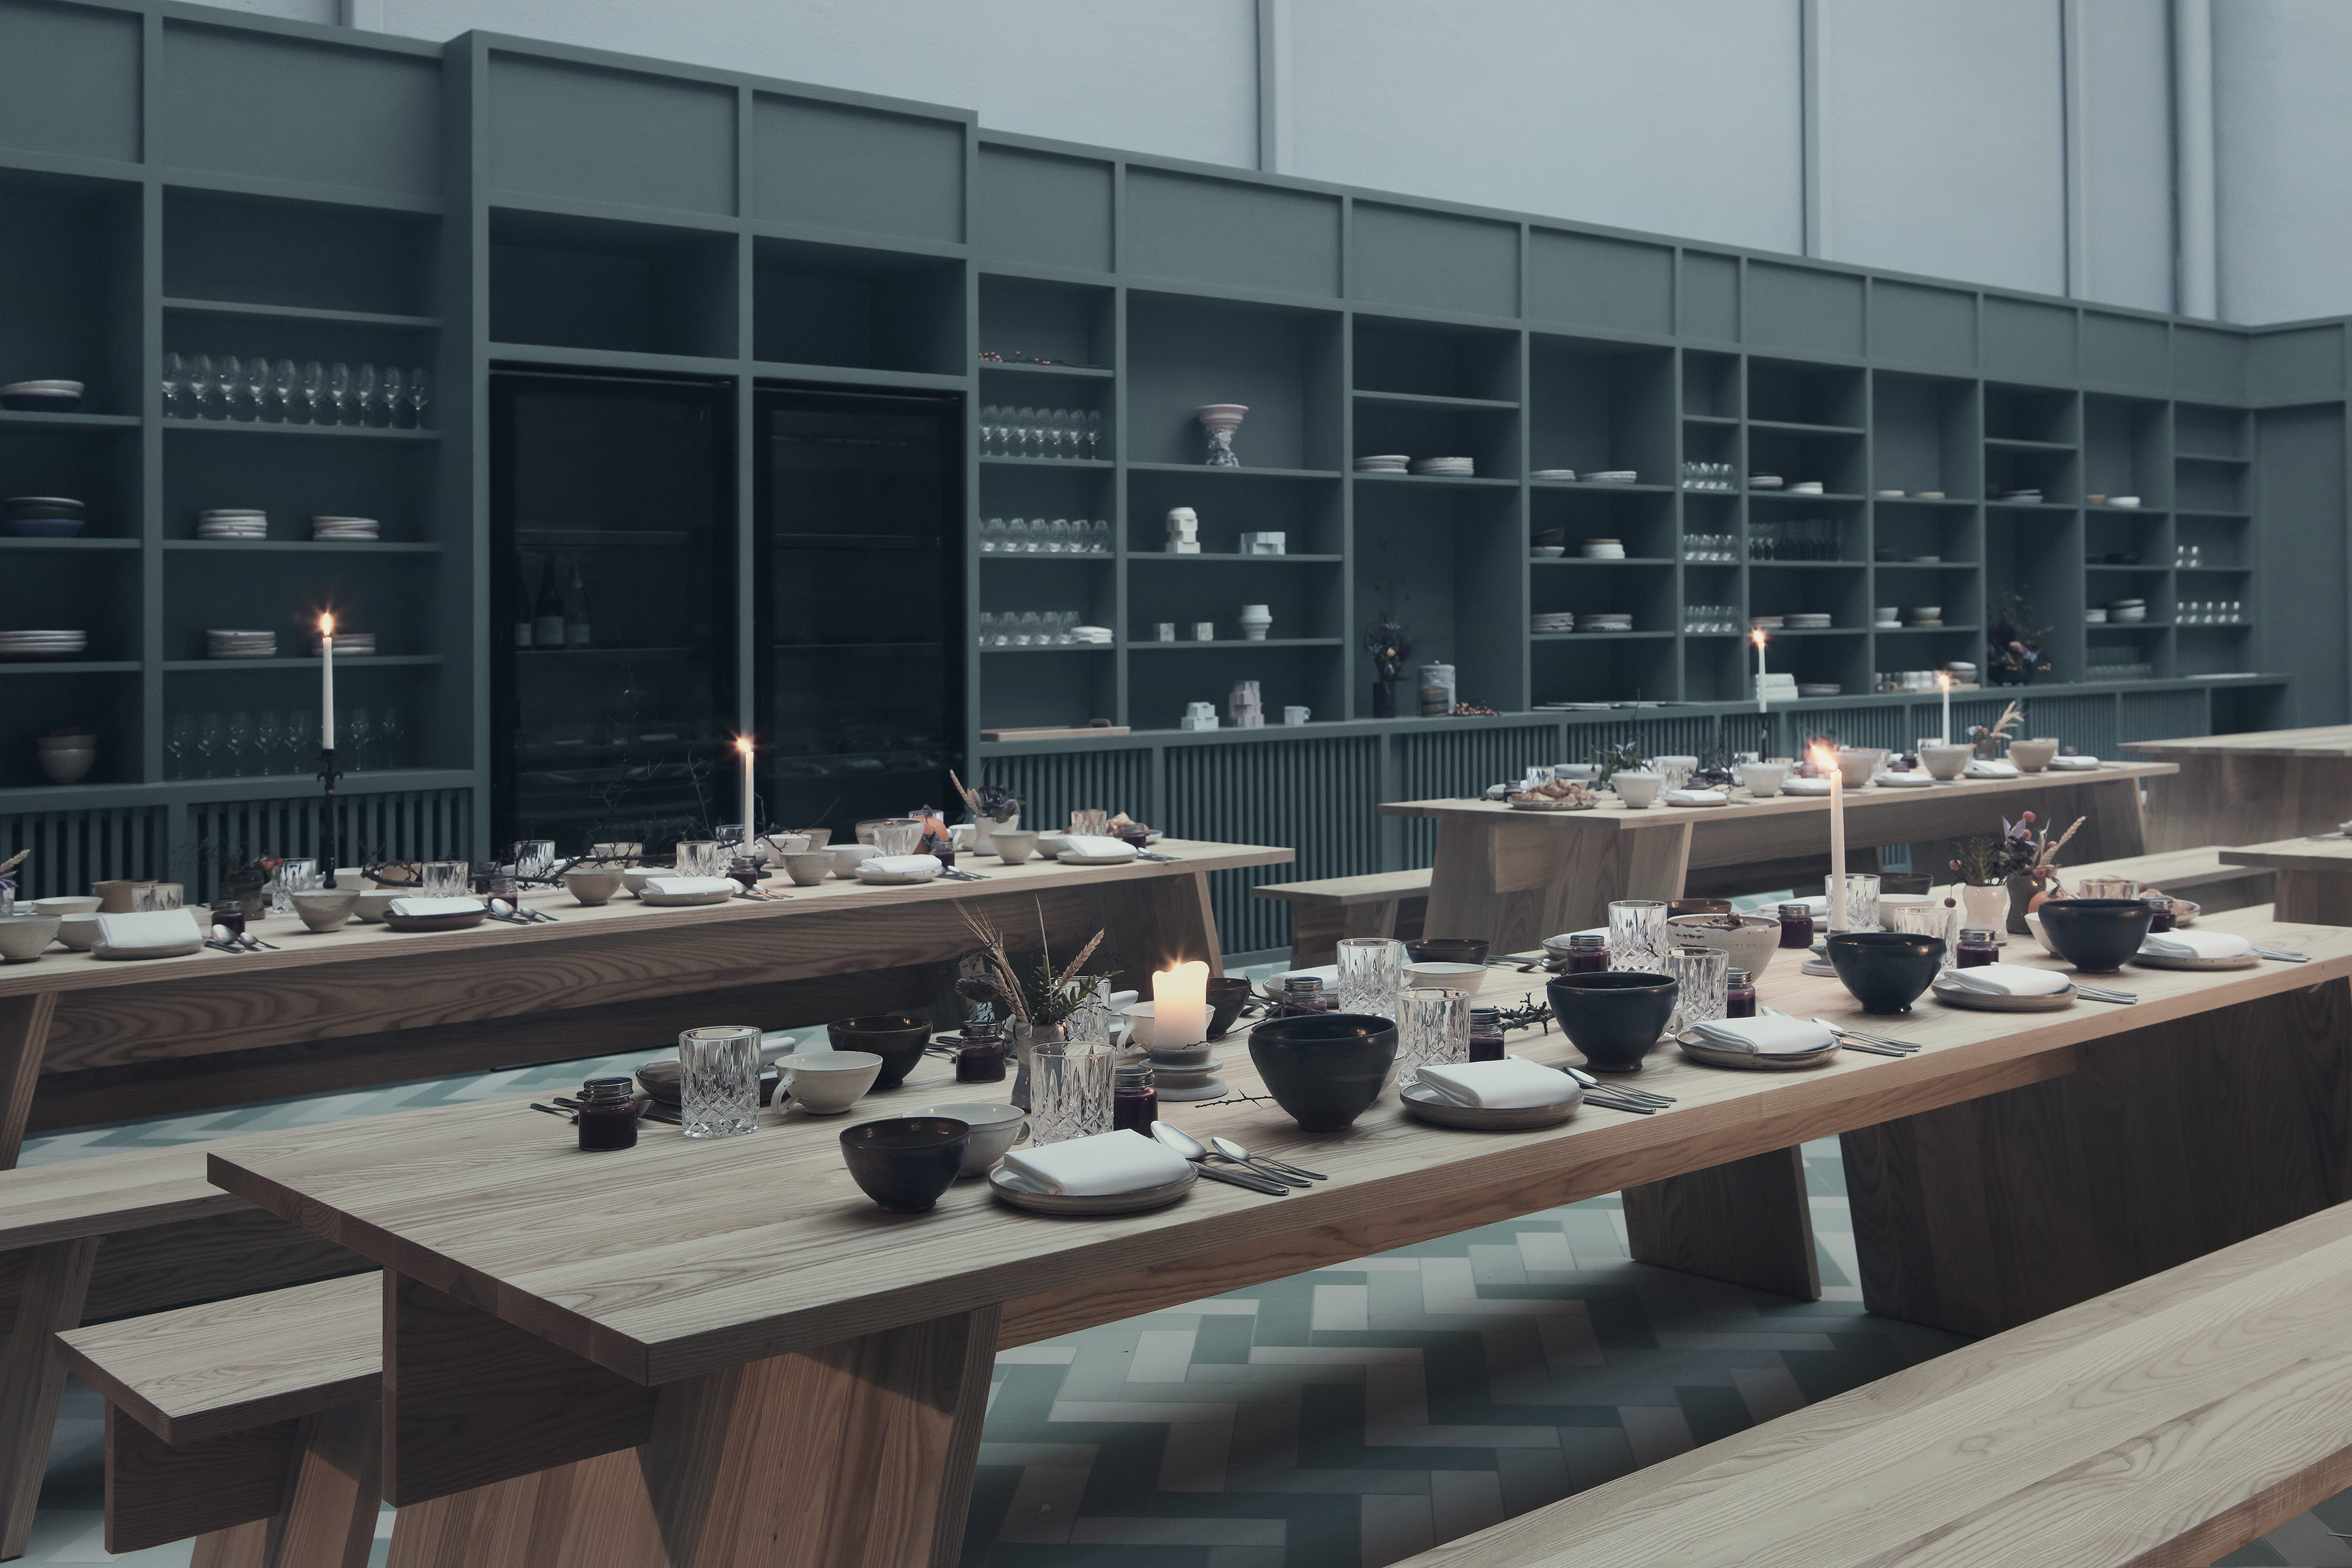 Interior shot of atrium with wall lined with dark shelves and wooden picnic-style tables topped with table settings arranged in two rows.